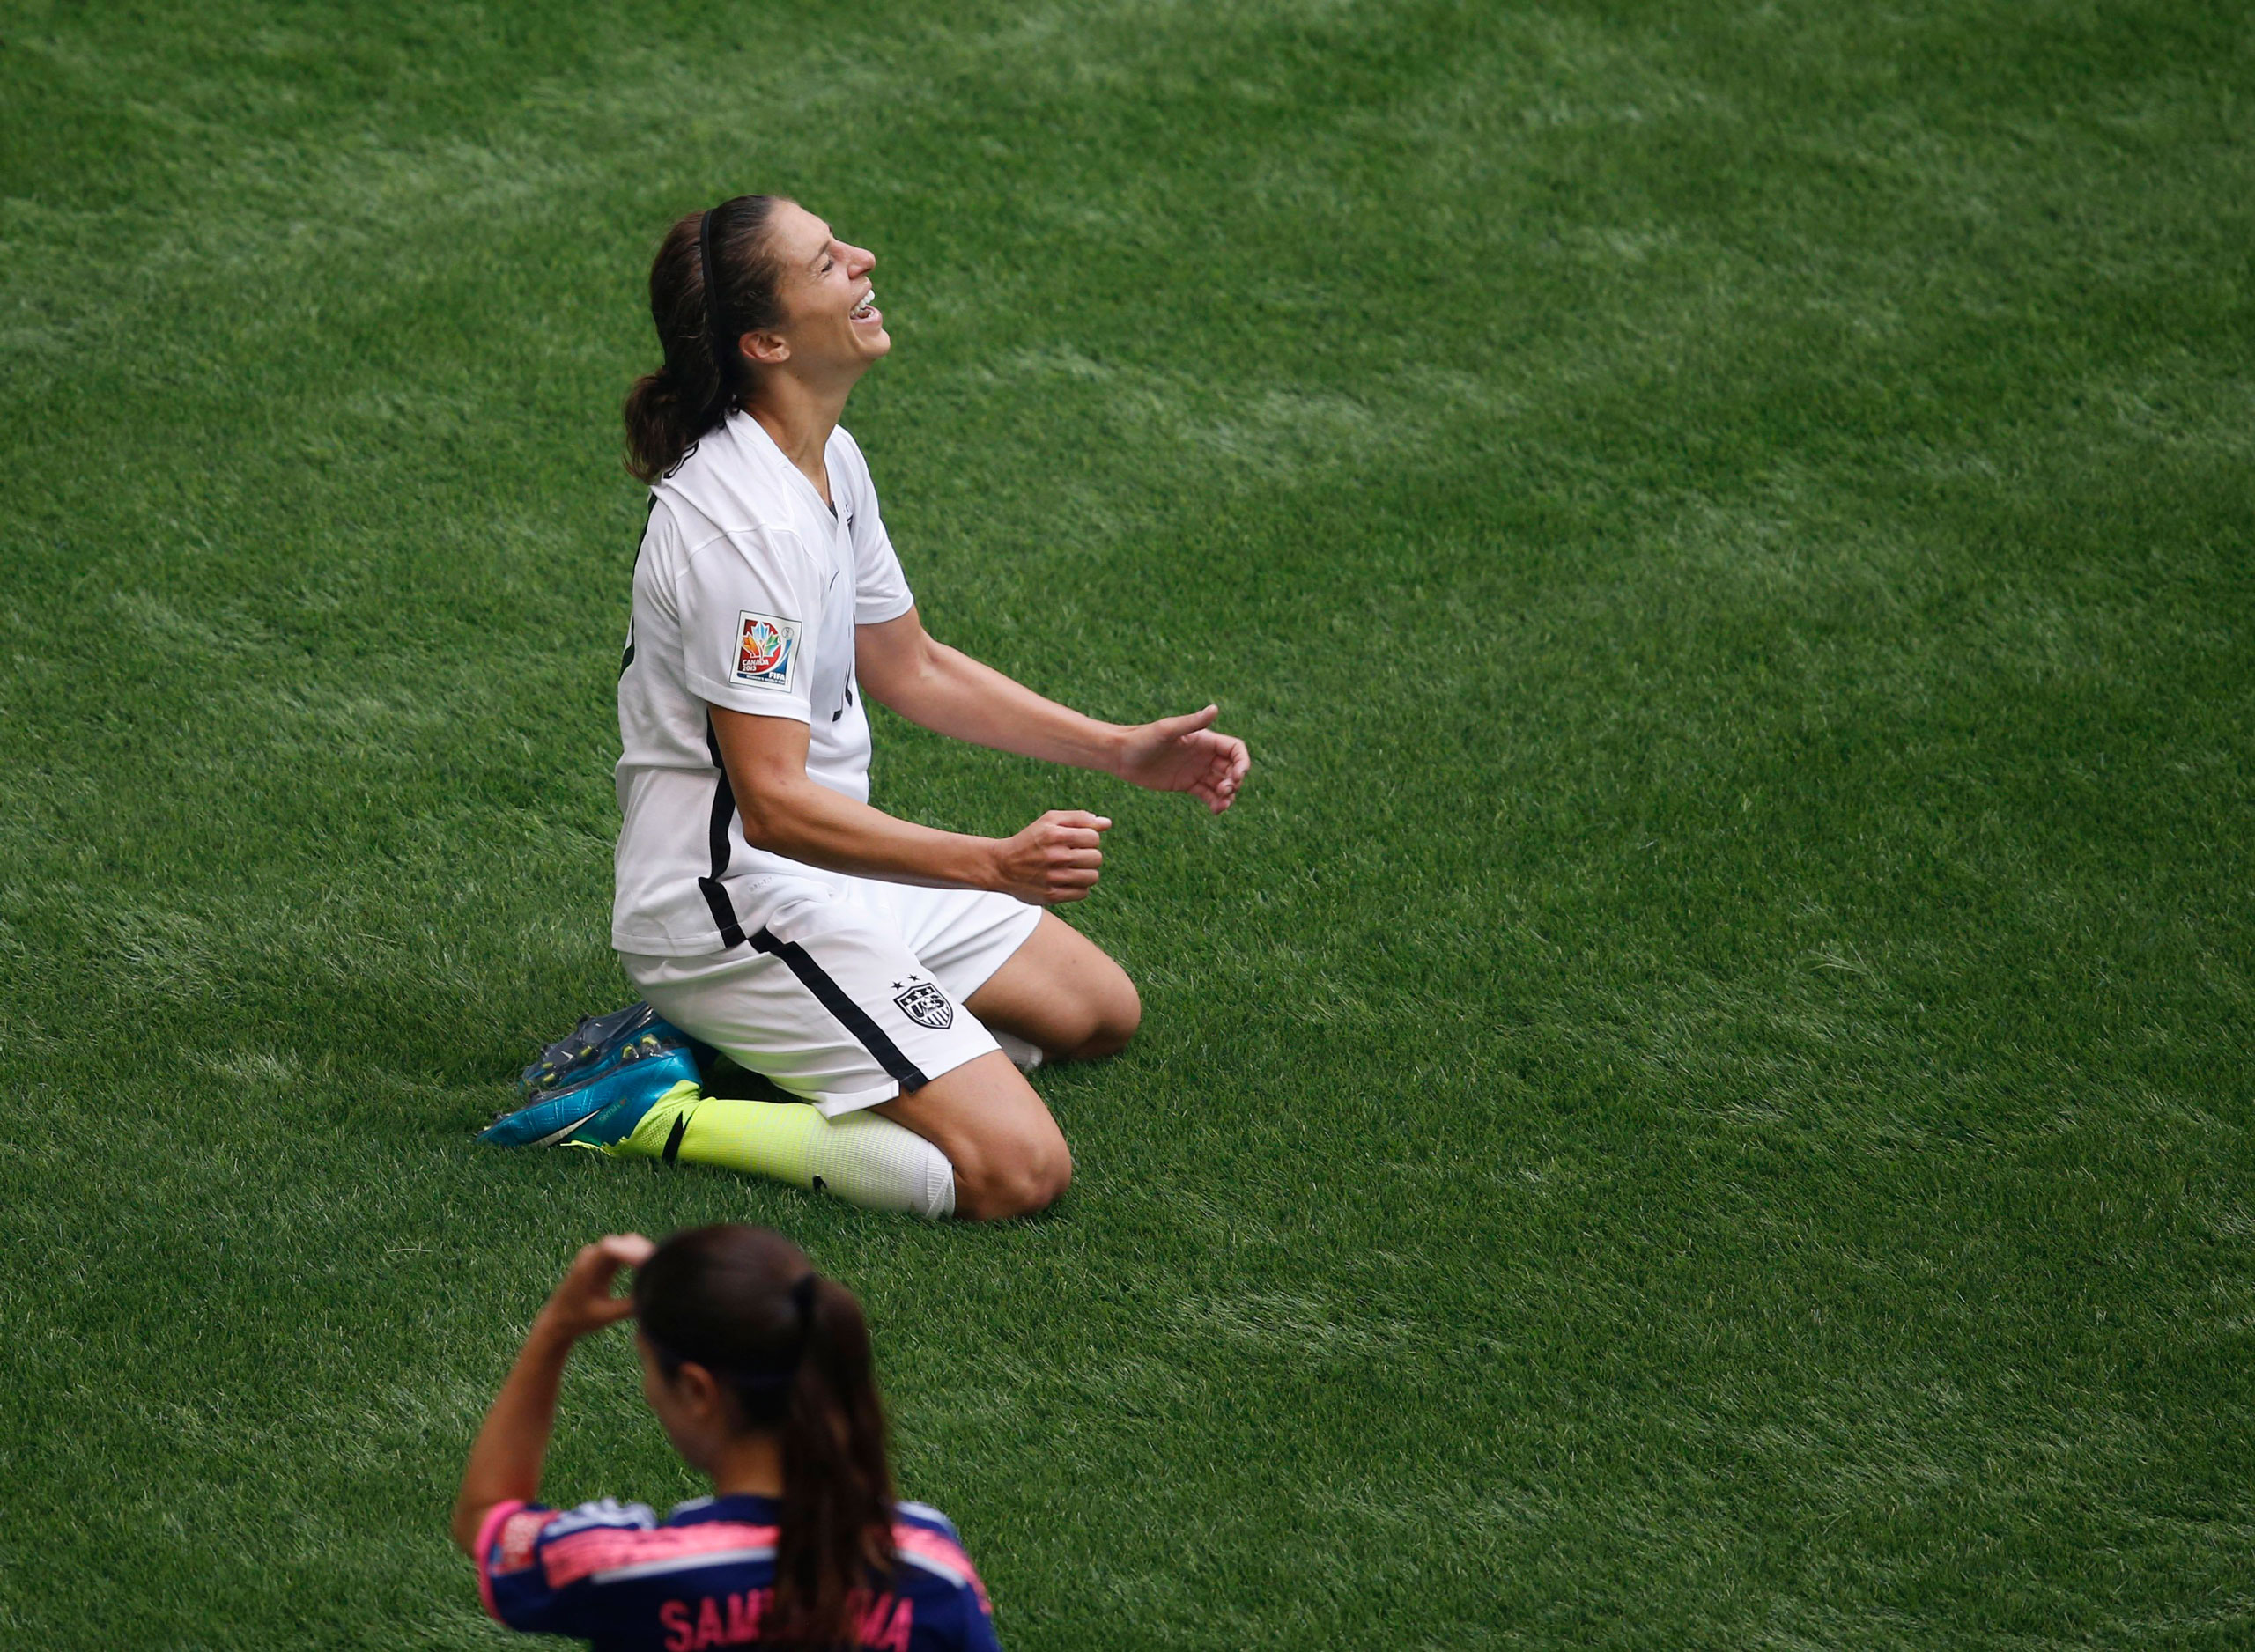 Carli Lloyd reacts after defeating Japan in the final of the FIFA 2015 Women's World Cup at BC Place Stadium in Vancouver on July 5, 2015.